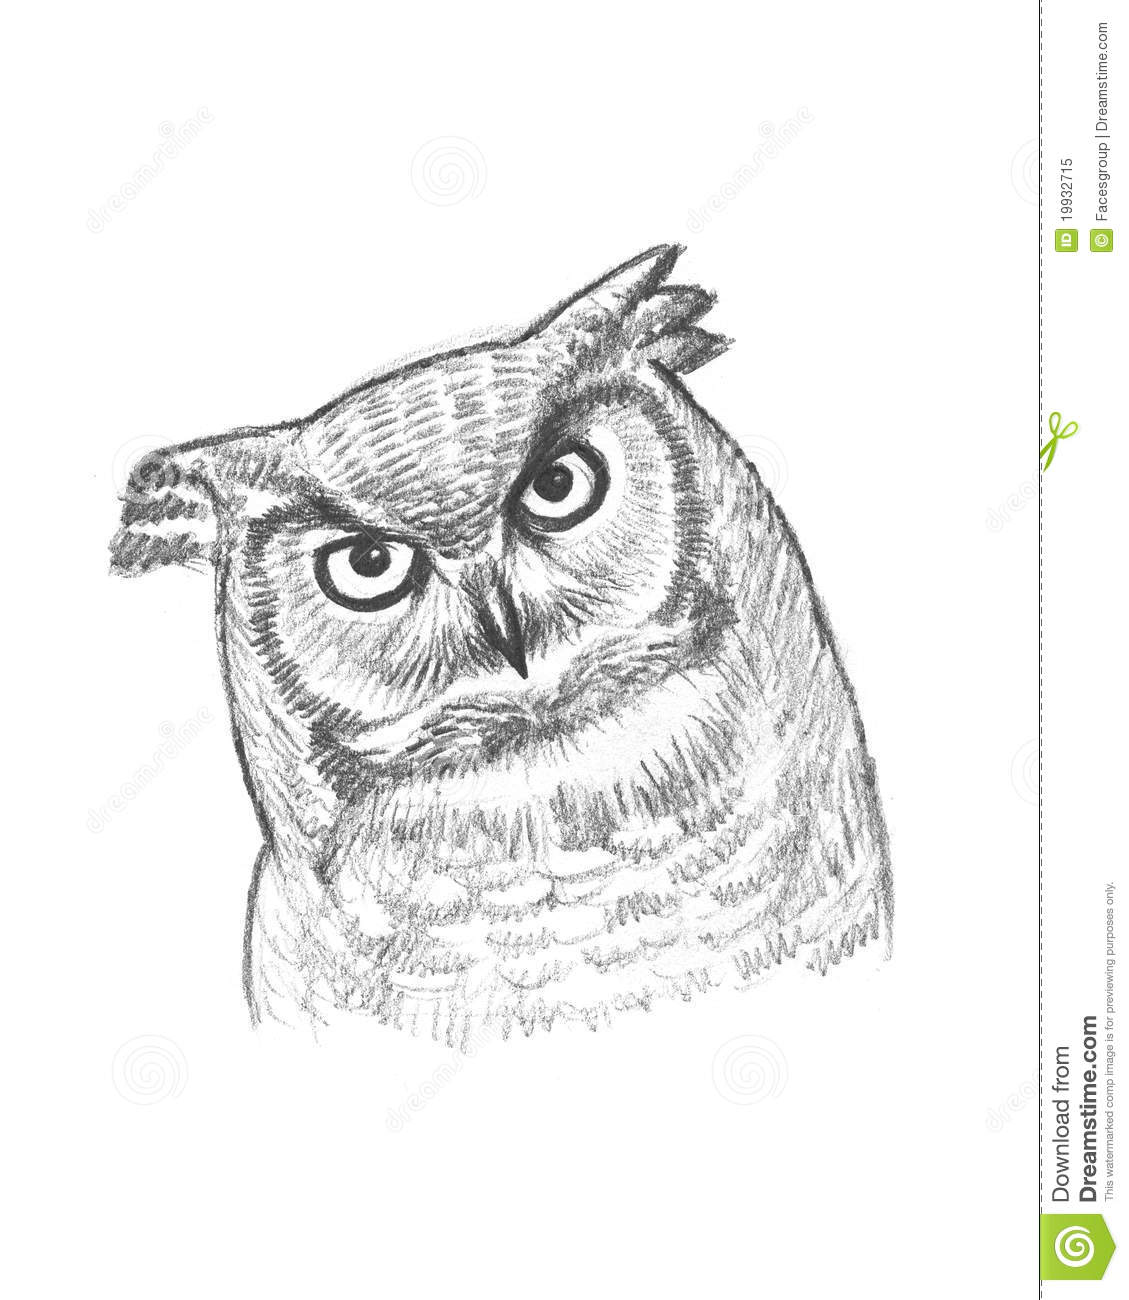 A pencil sketch of an owl stock illustration illustration of